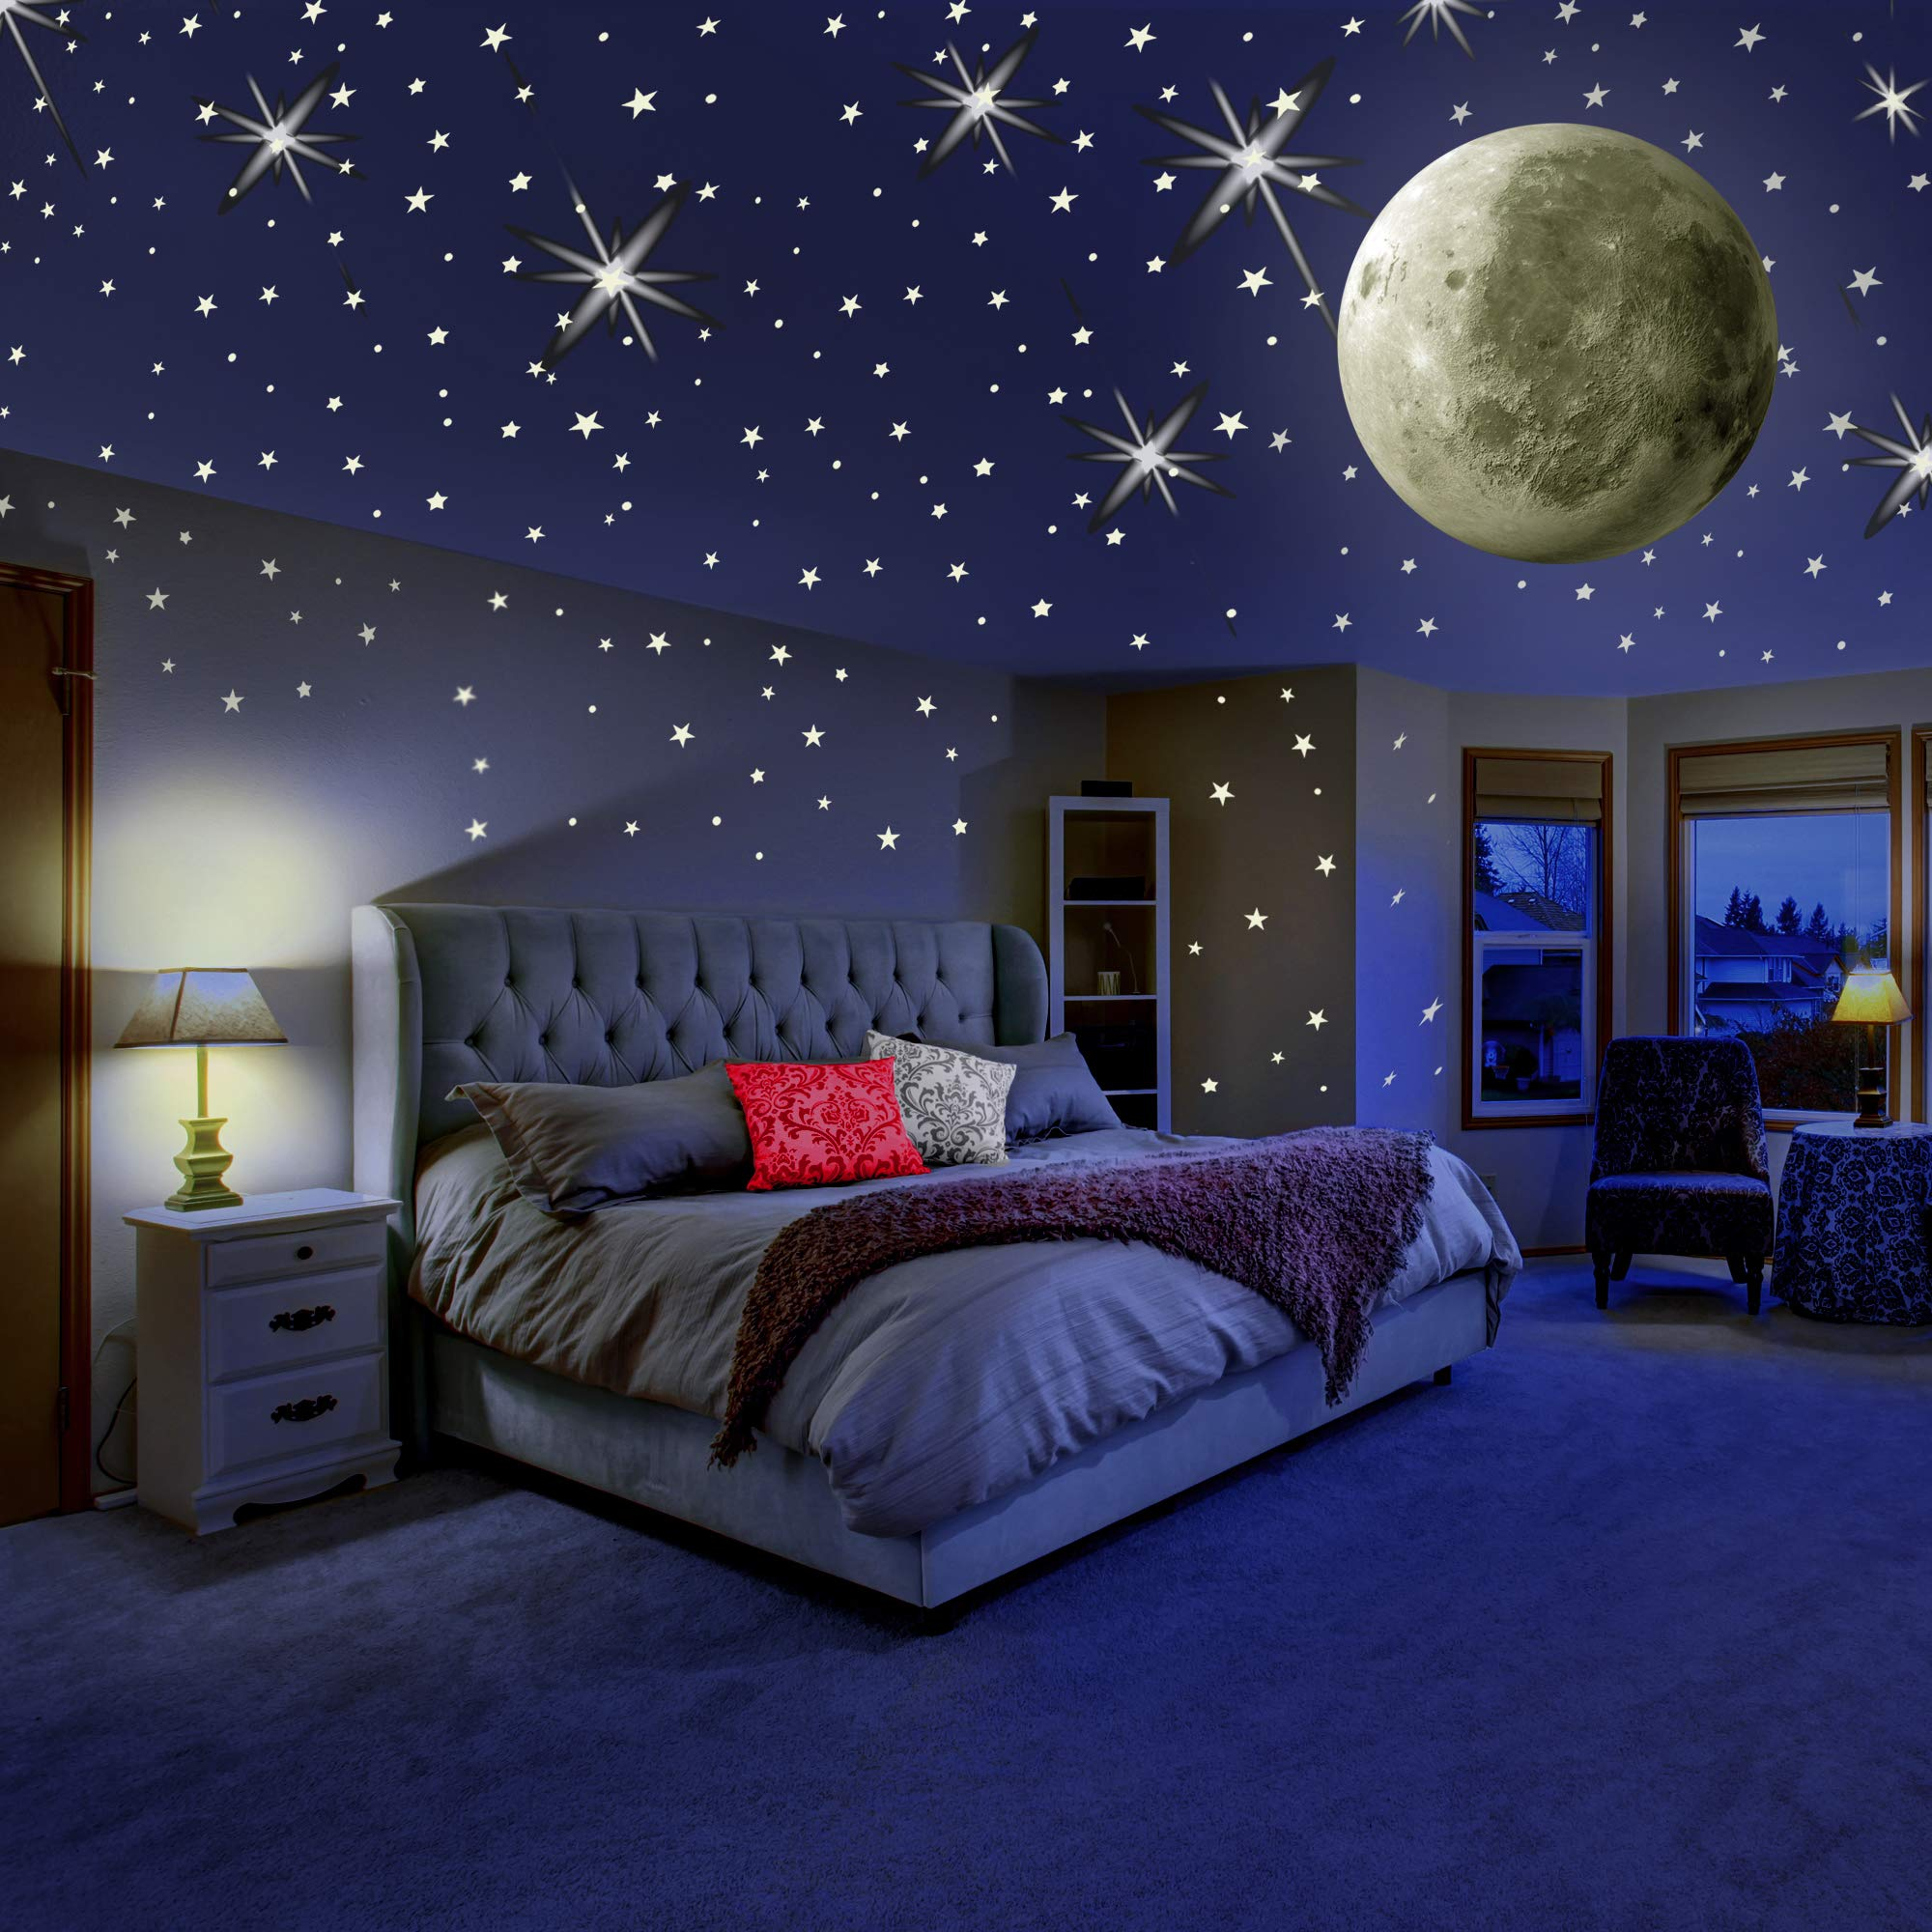 Glow In The Dark Stars Wall Vinyl Stickers, 504 Dots and ...  Kids Bedroom At Night